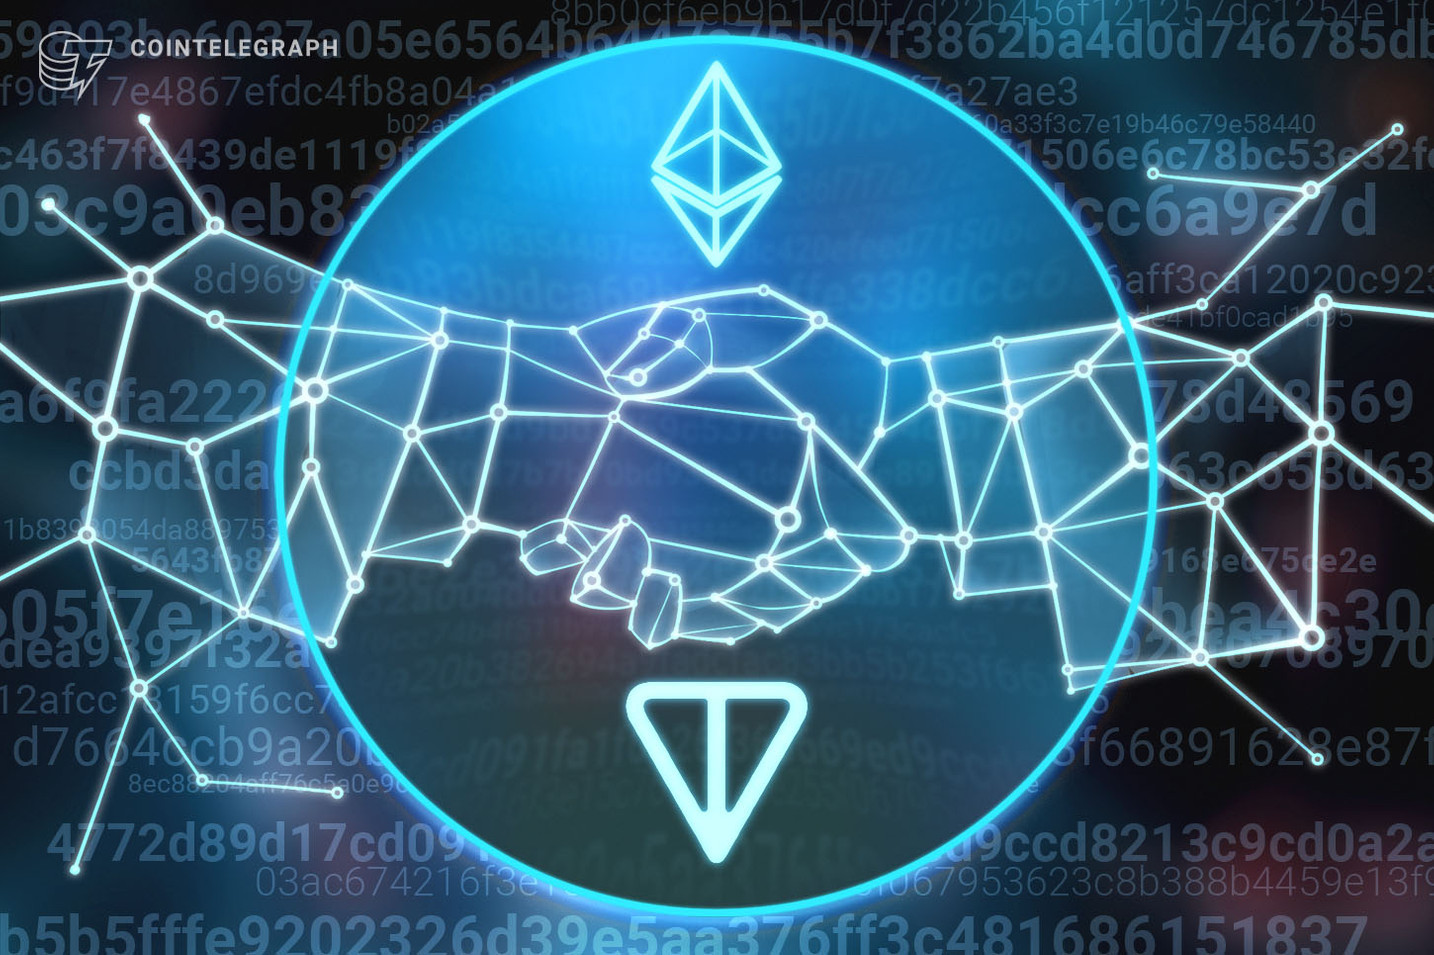 Report: Telegram's TON Blockchain to Be Compatible with Ethereum DApps